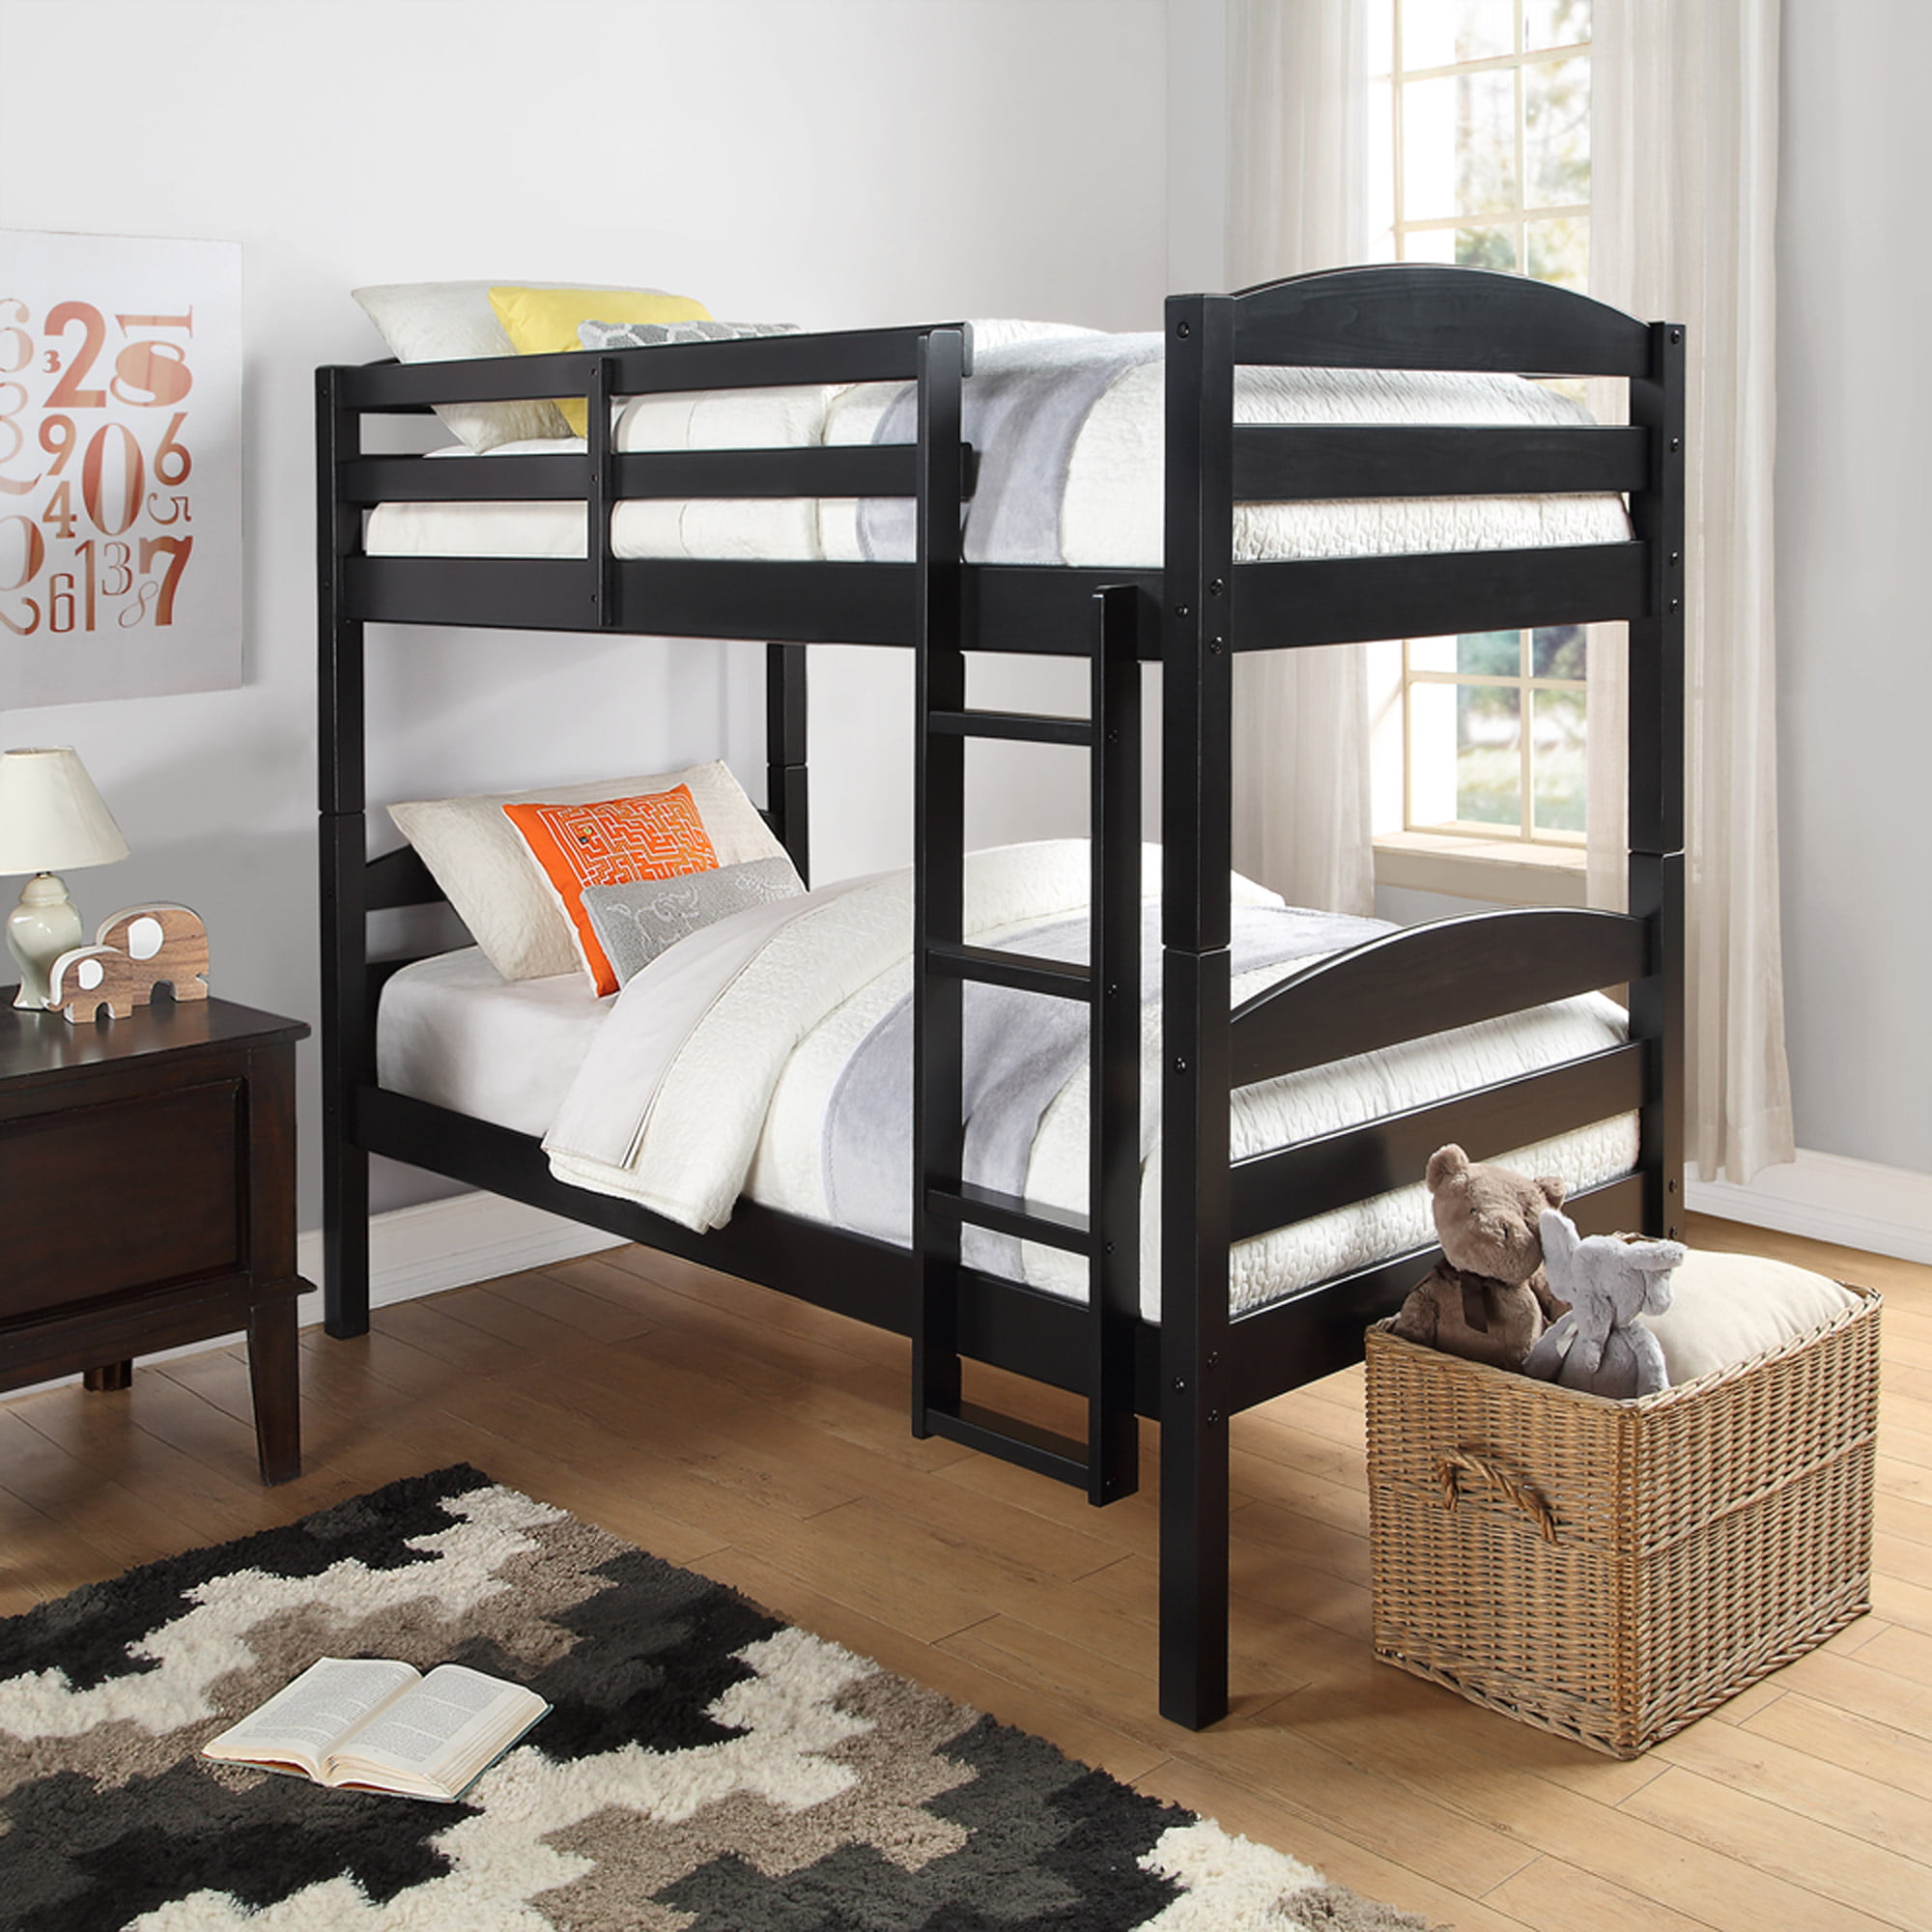 better homes and gardens leighton twin over twin wood bunk bed with set of 2 mattresses multiple finishes walmartcom